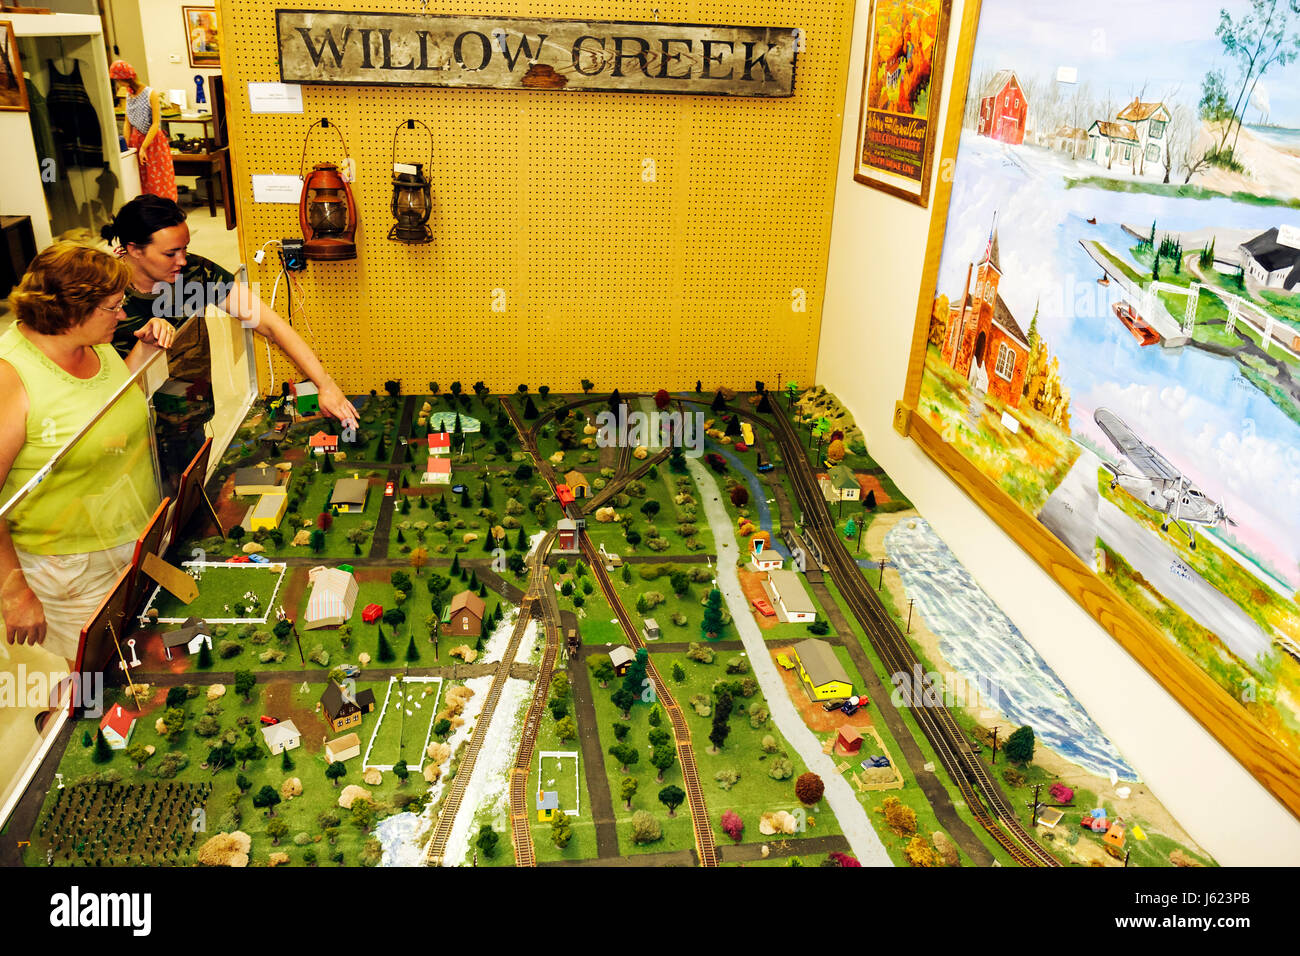 Indiana Portage Countryside Park Alton Goin Historical Museum Willow Creek regional history woman women senior scale - Stock Image